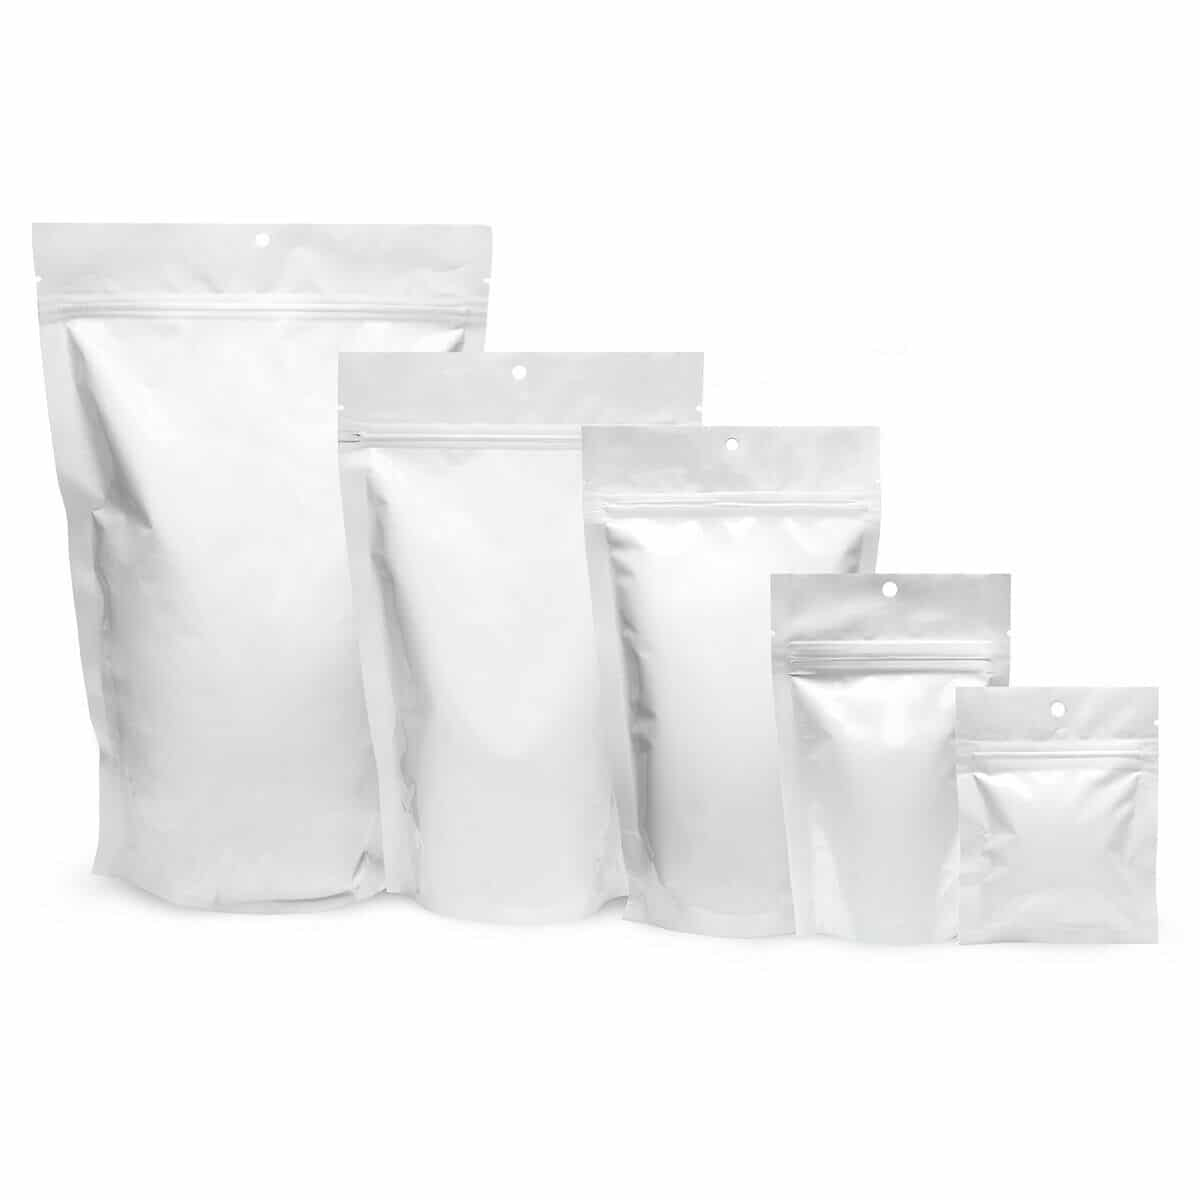 """500 Pk Mylar Bags 4""""x 5.5""""x 1.5"""" Stand Up Resealable Pouch 4 Mil FDA Food Grade"""